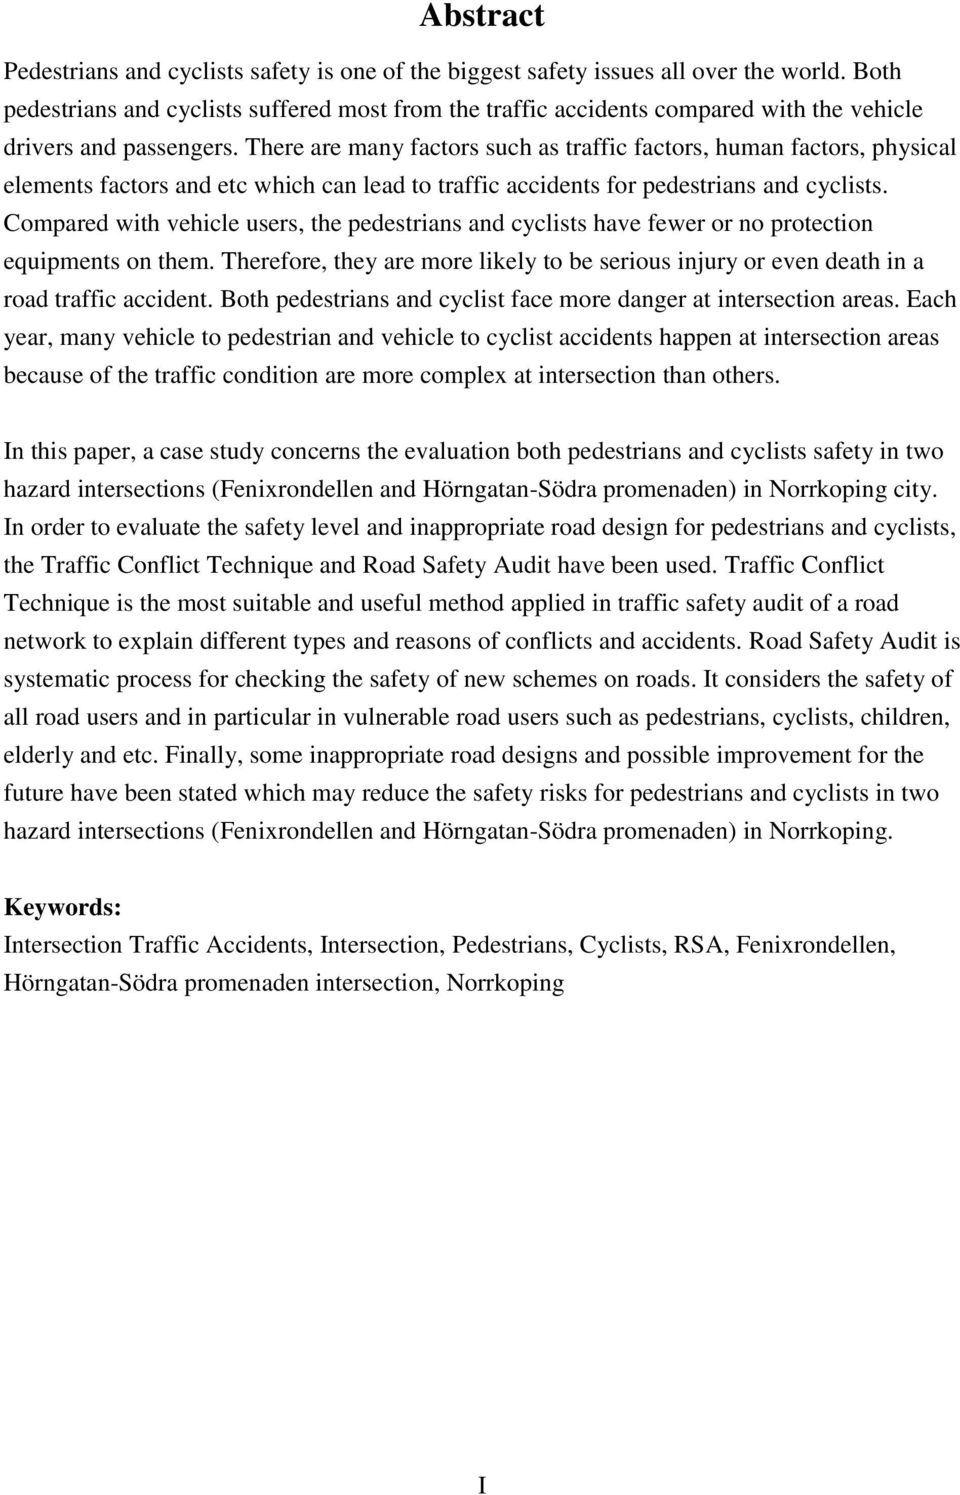 There are many factors such as traffic factors, human factors, physical elements factors and etc which can lead to traffic accidents for pedestrians and cyclists.